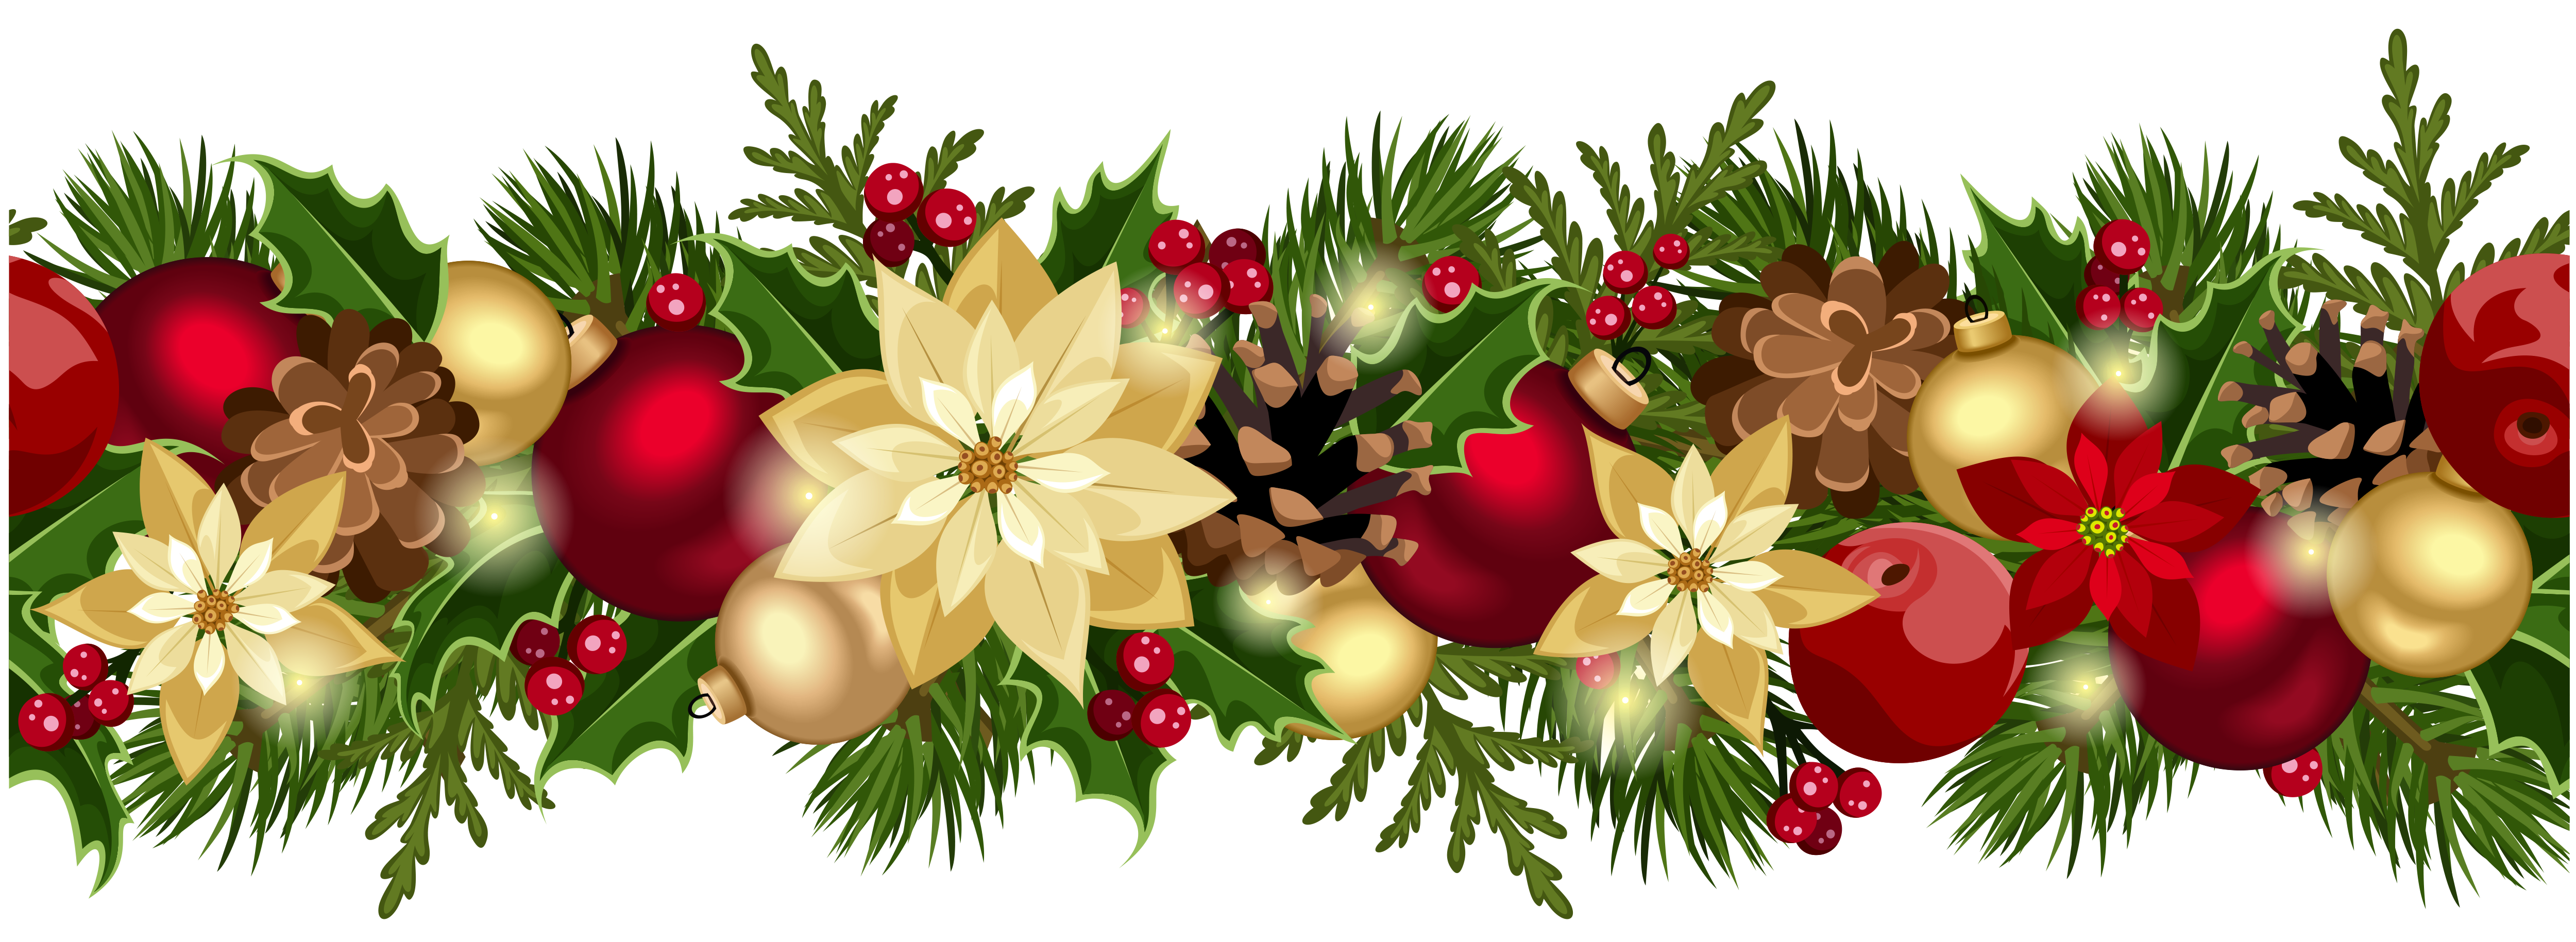 Download Christmas Wreath Transparent HQ PNG Image ...